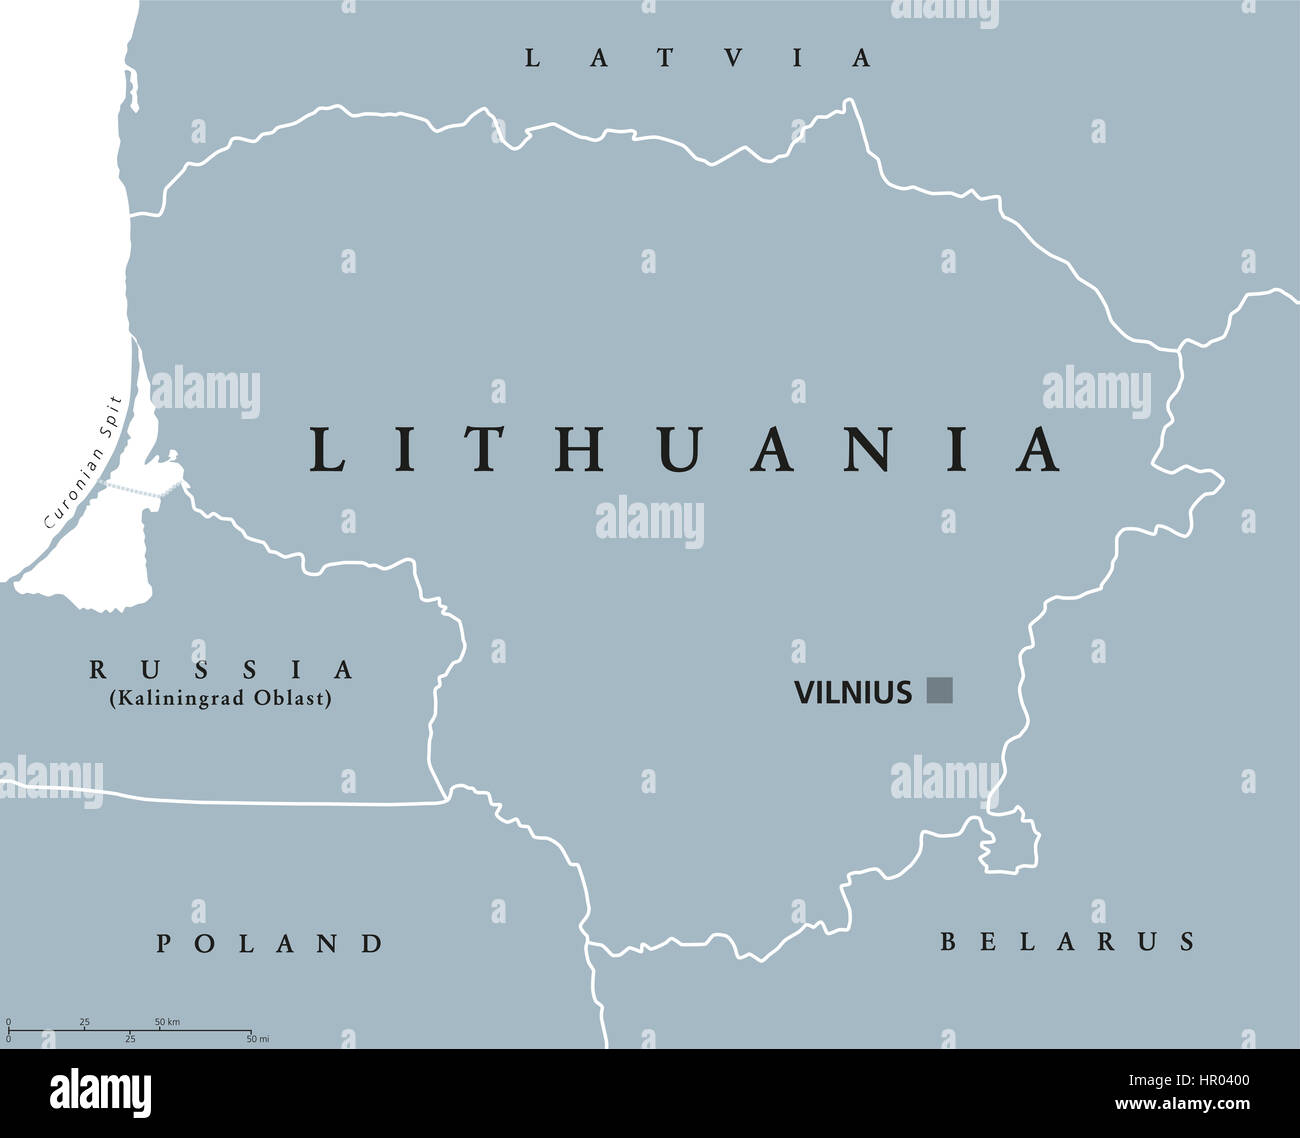 Lithuania political map with capital Vilnius, national borders and neighbor countries. Republic in Northern Europe, Stock Photo